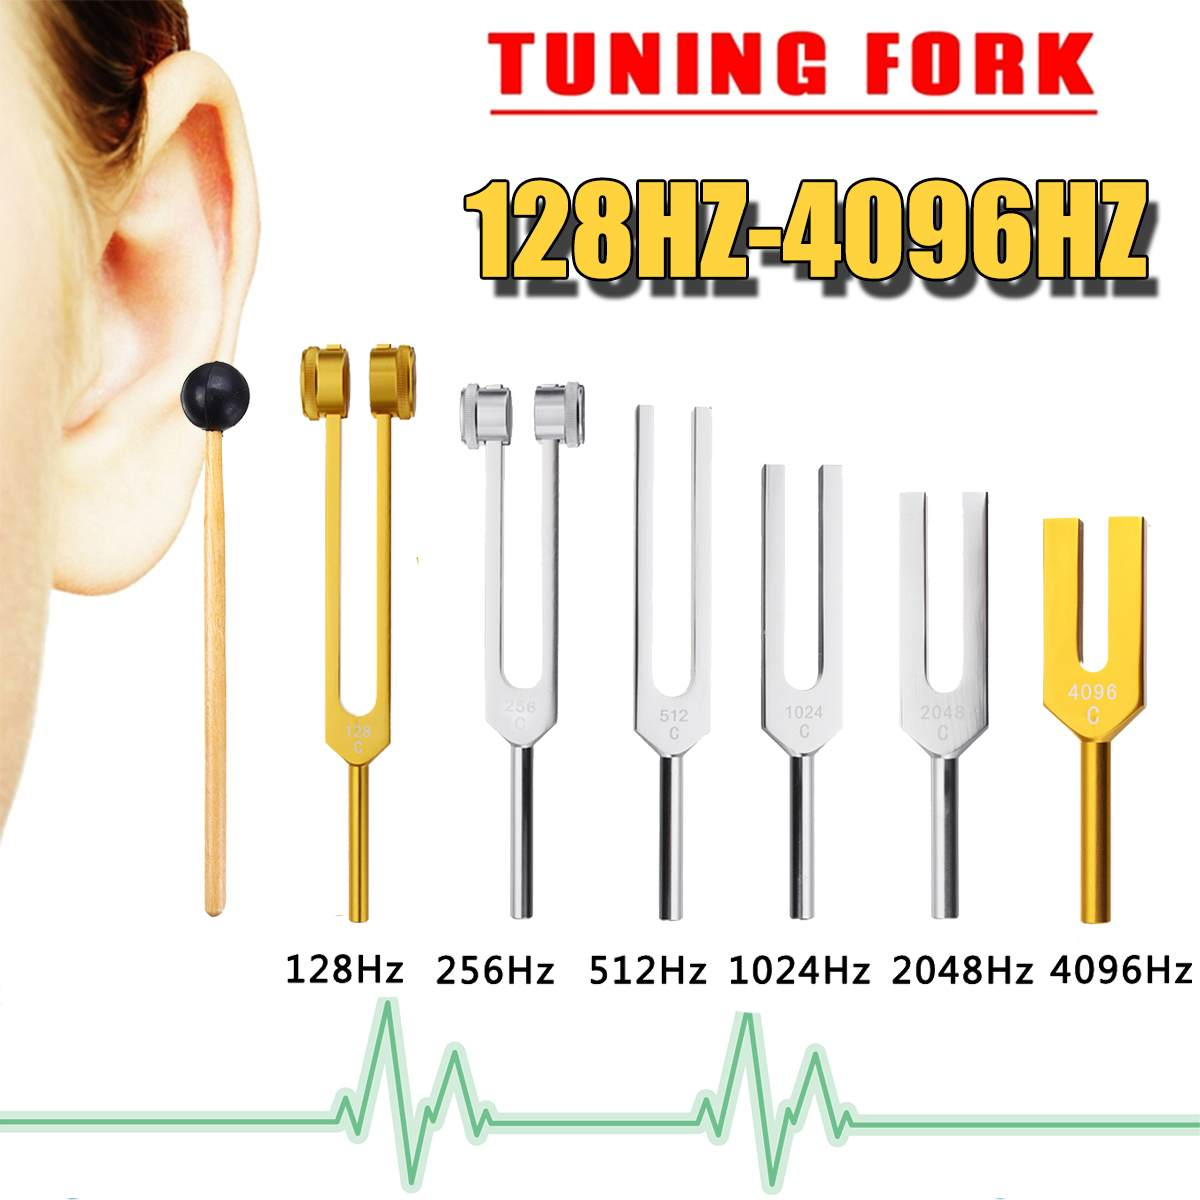 6Pcs 128/256/512/1024/4096HZ Medical Tuning Fork Chakra Healing Sound Therapy Tuner+Hammer Ball+Mallet+Bag Musical Instrument6Pcs 128/256/512/1024/4096HZ Medical Tuning Fork Chakra Healing Sound Therapy Tuner+Hammer Ball+Mallet+Bag Musical Instrument